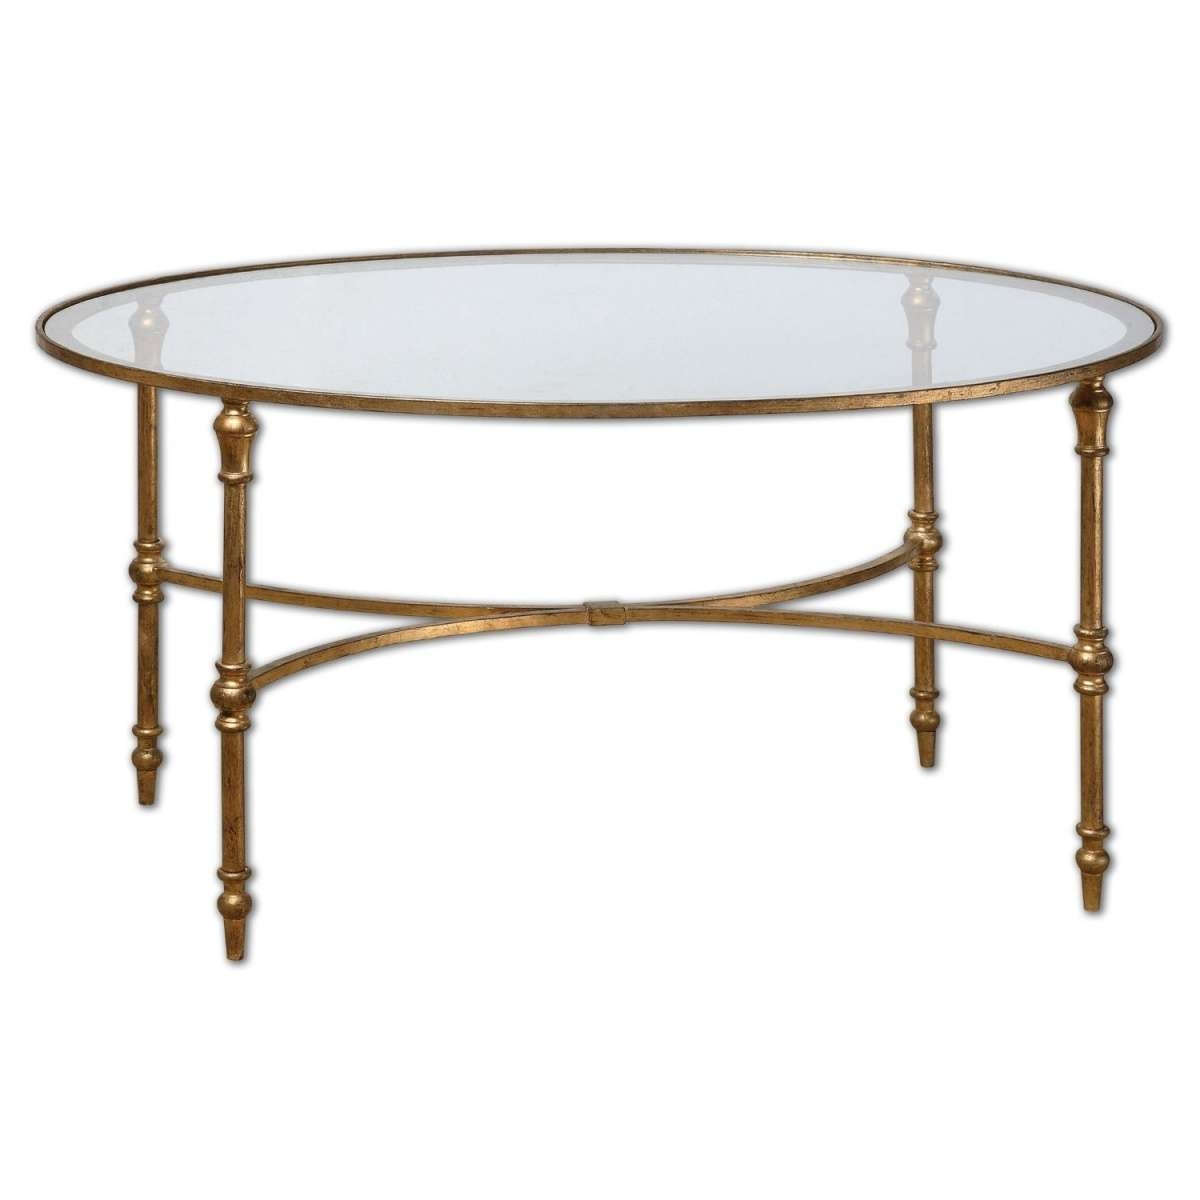 Popular Metal Glass Coffee Tables For Coffee Tables : Fashionable Inspiration All Glass Coffee Table (View 17 of 20)